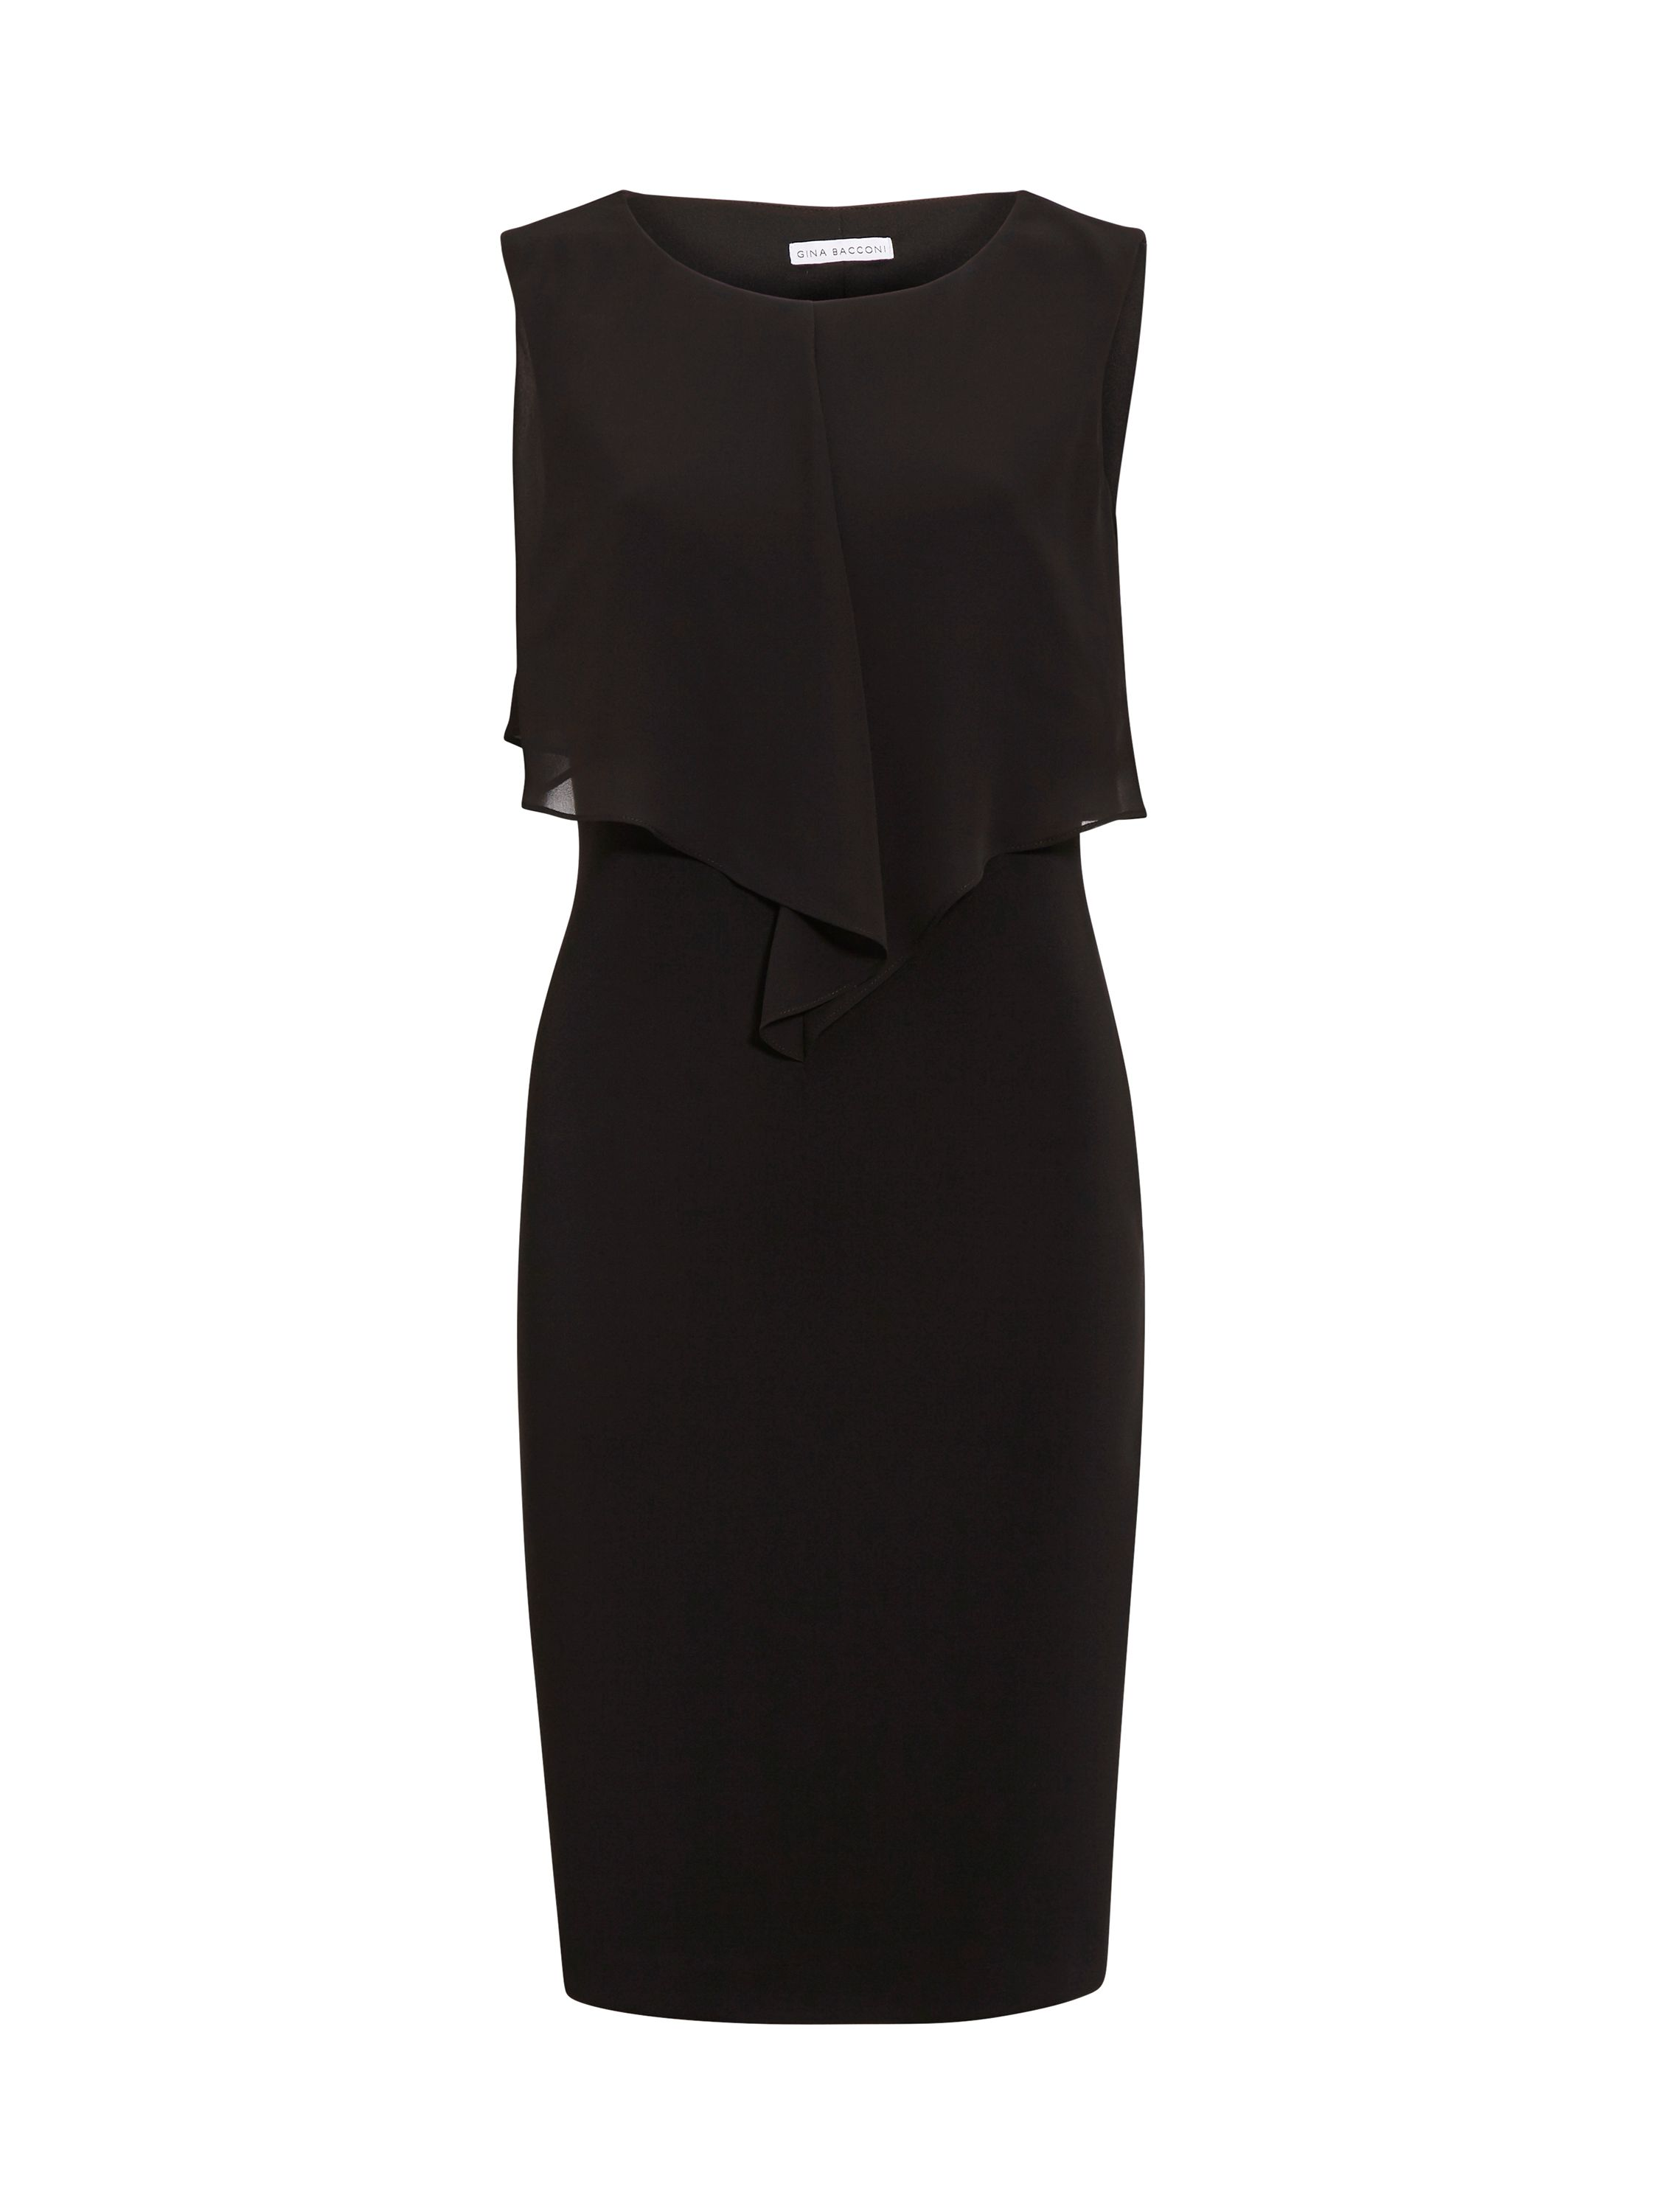 Gina Bacconi Moss crepe and chiffon dress, Black